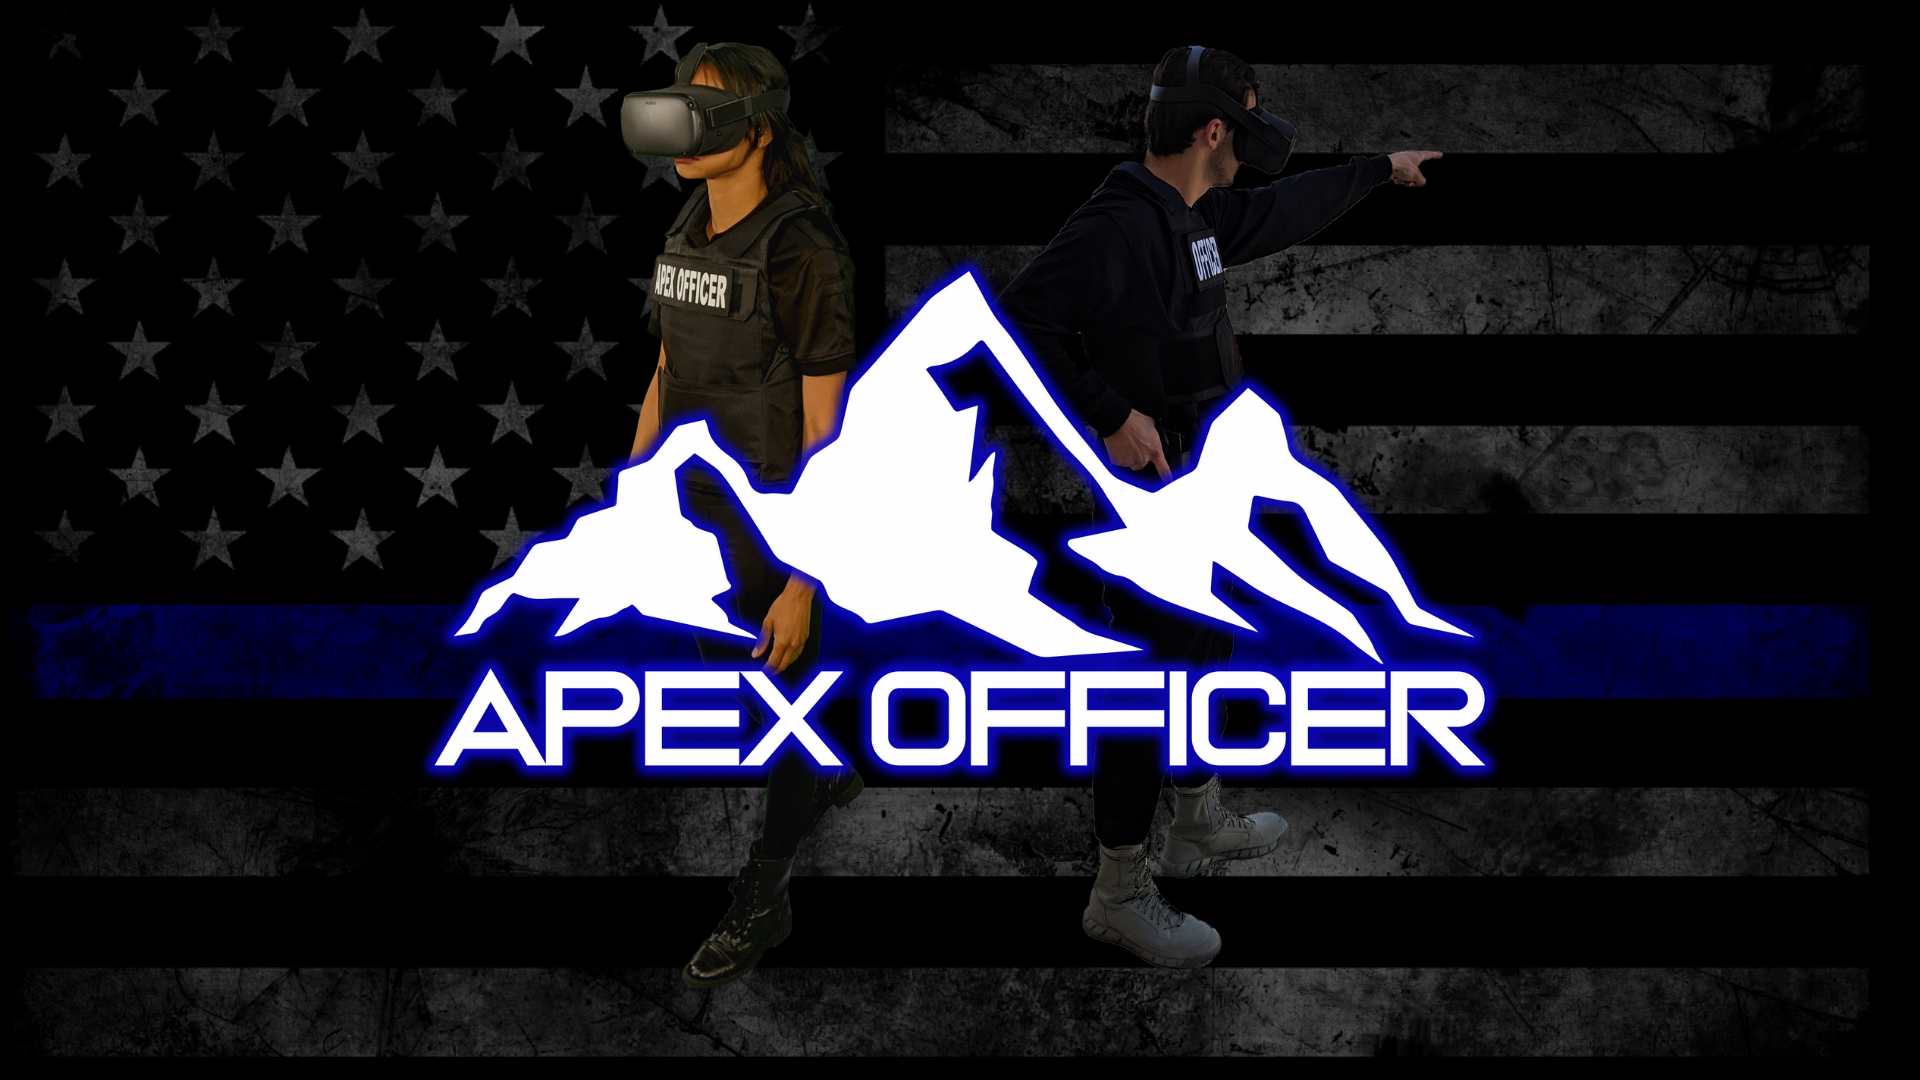 Apex Officer Implicit Bias Training